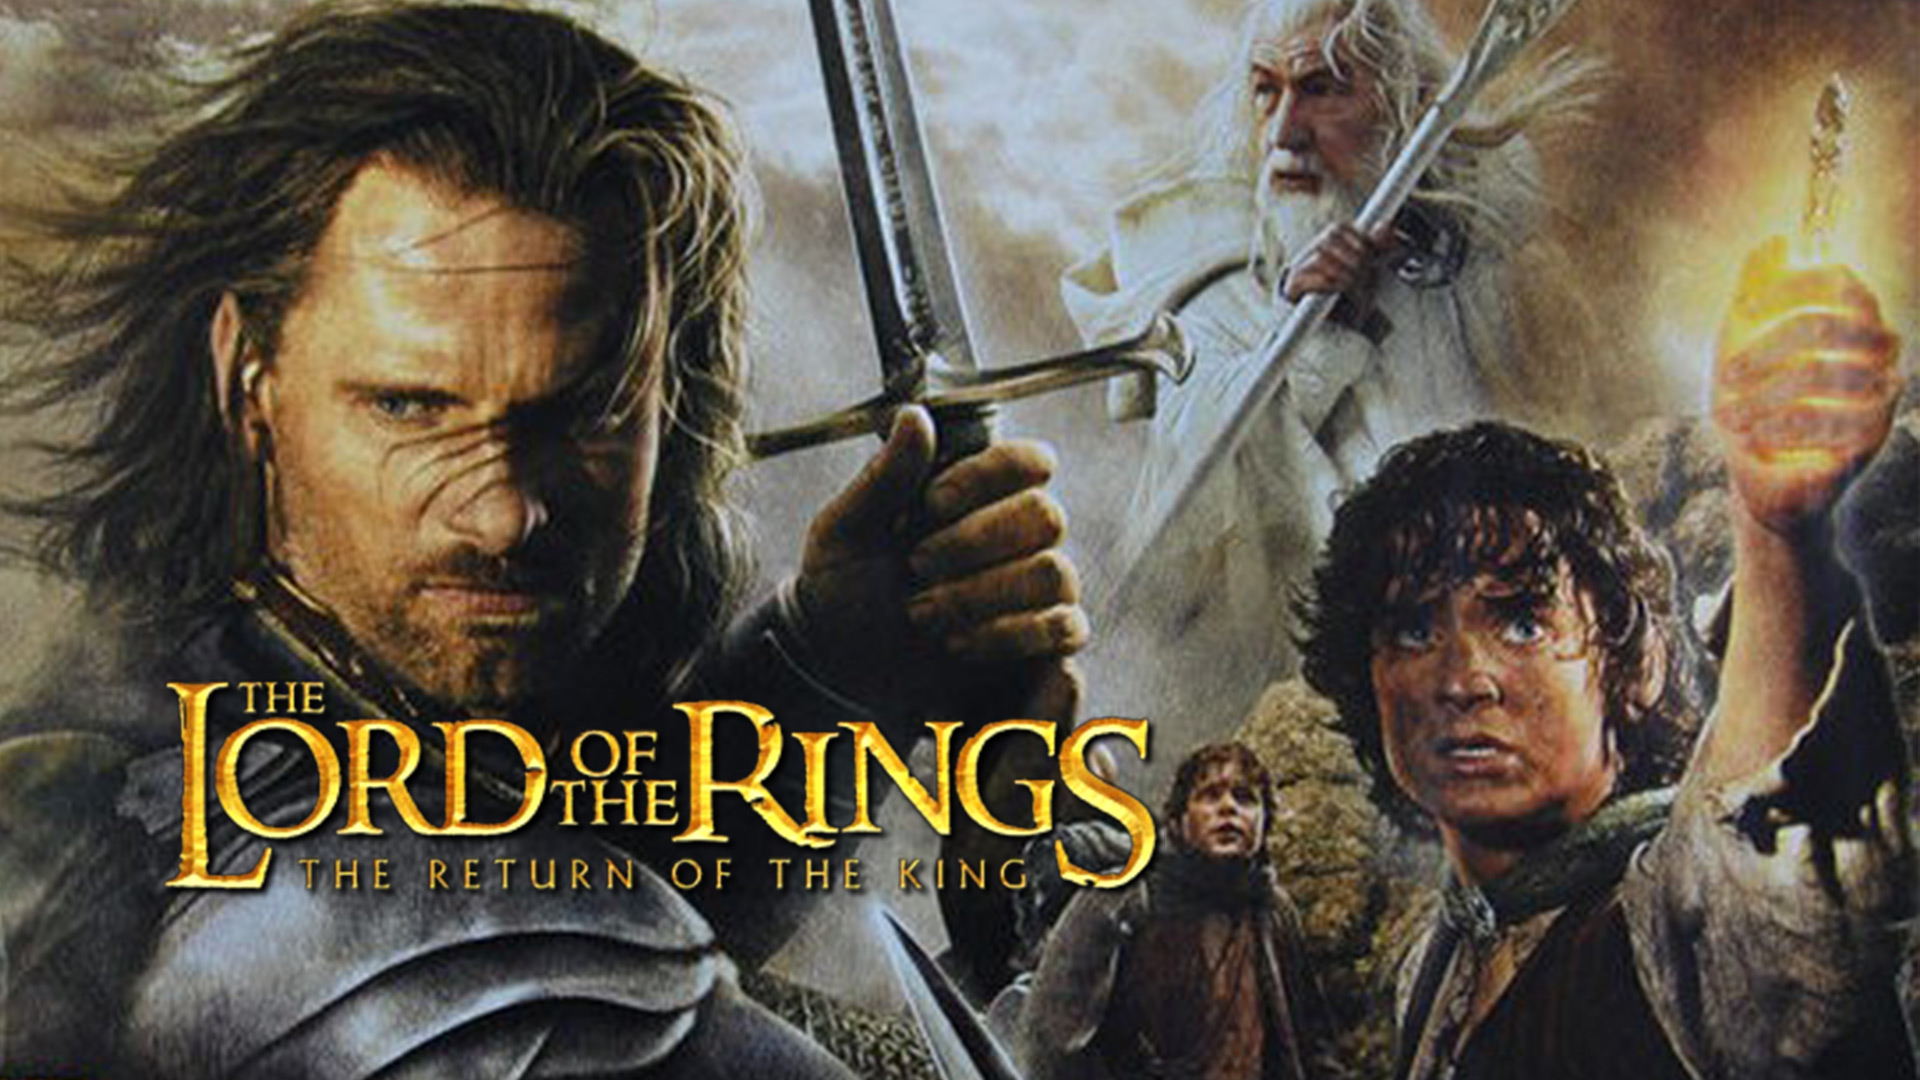 watch the lord of the rings extended online free